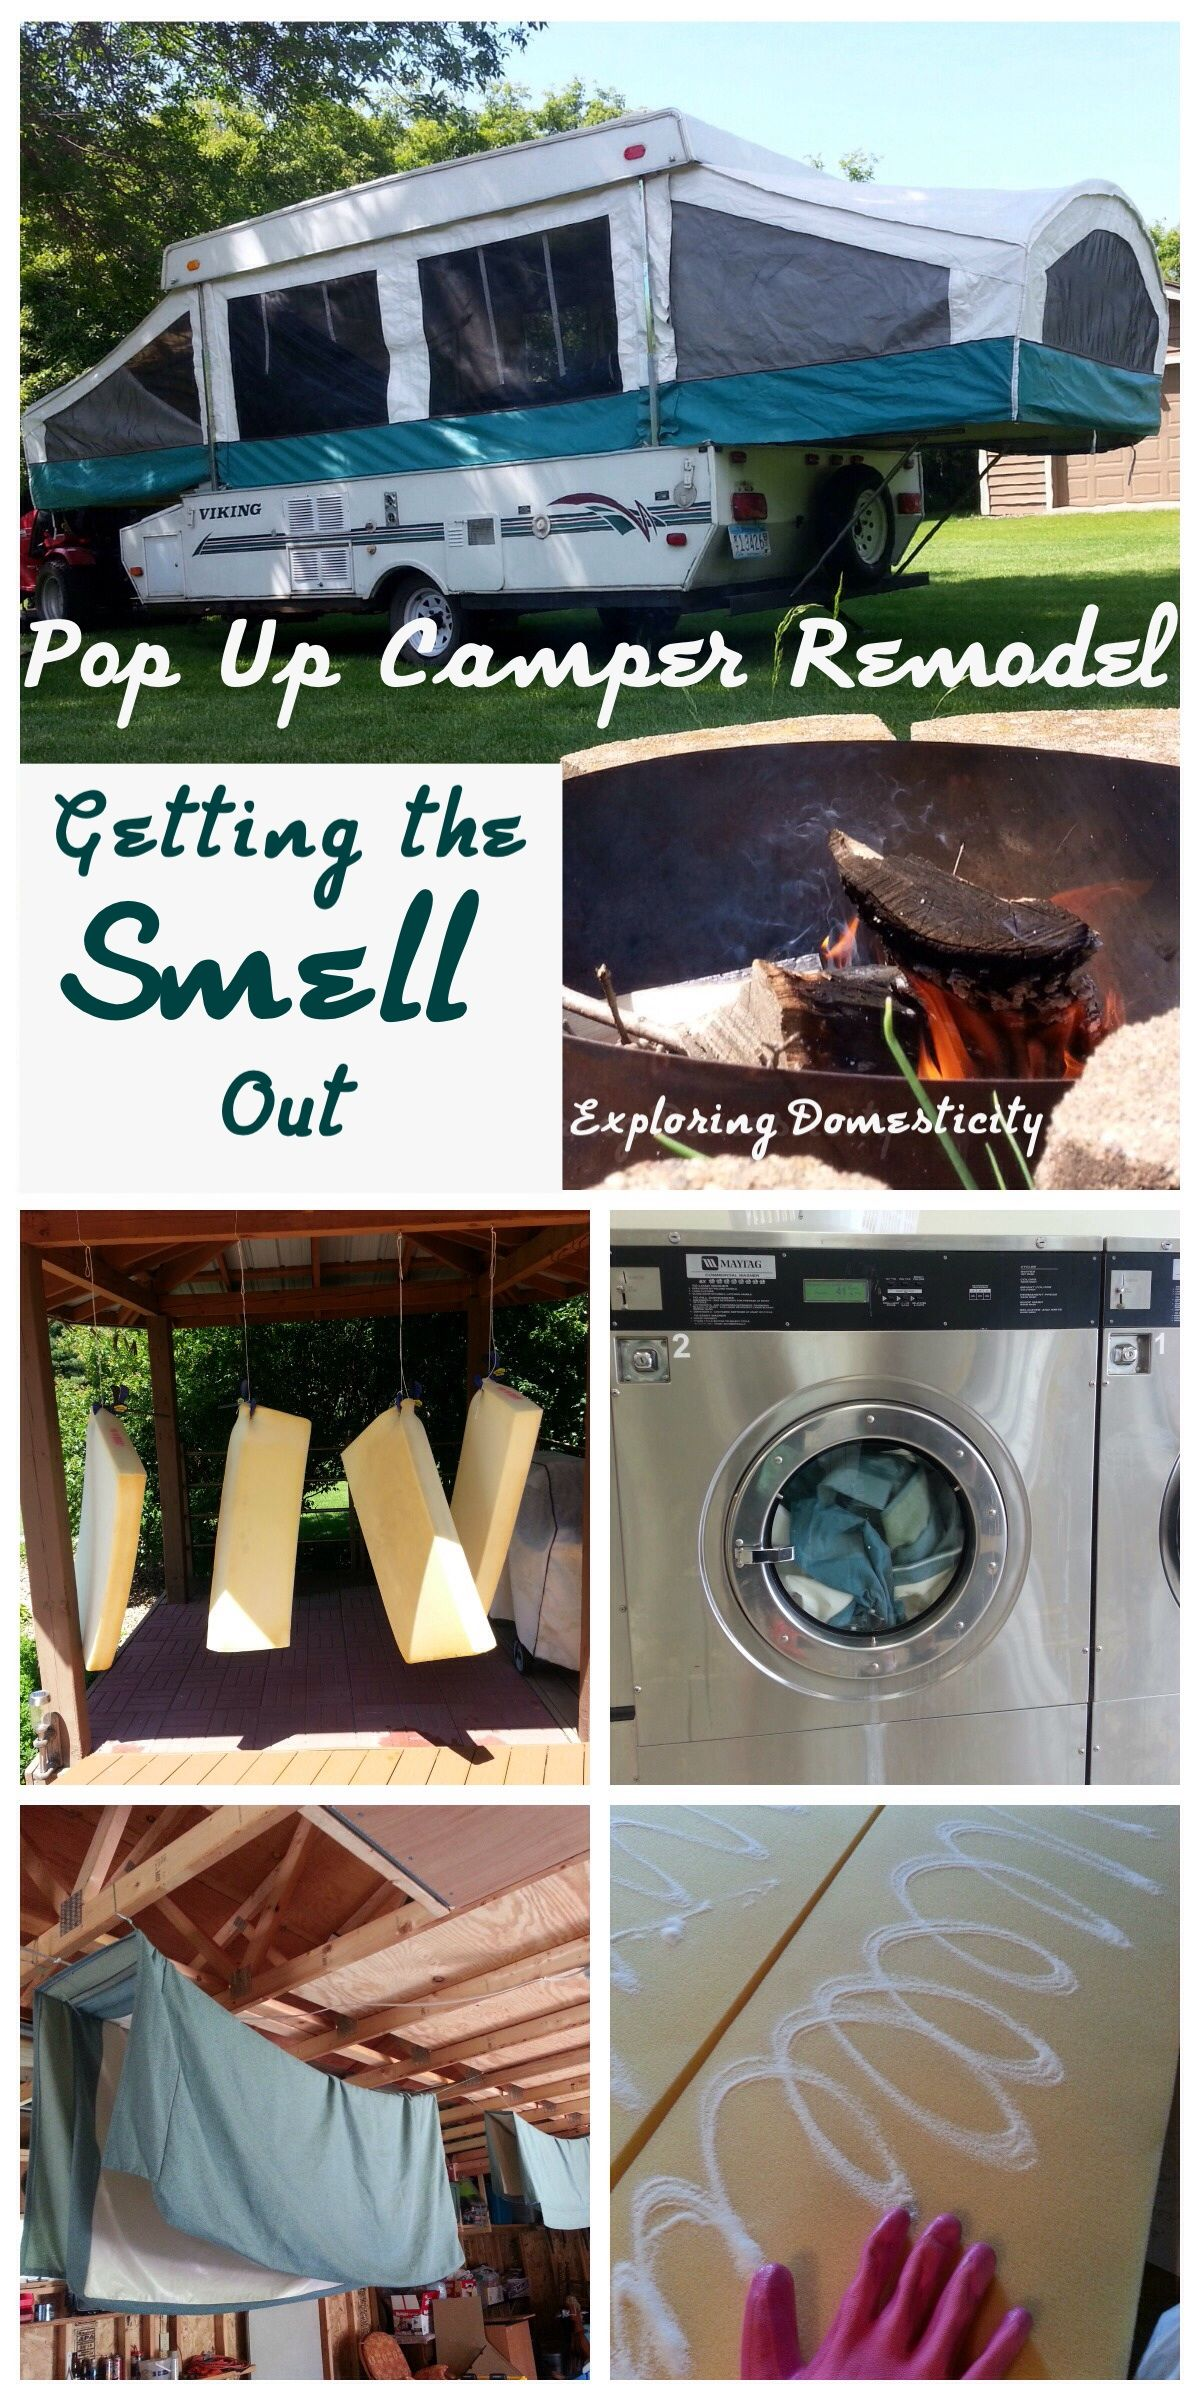 Pop Up Camper Remodel: Getting the Smell Out | Pinterest